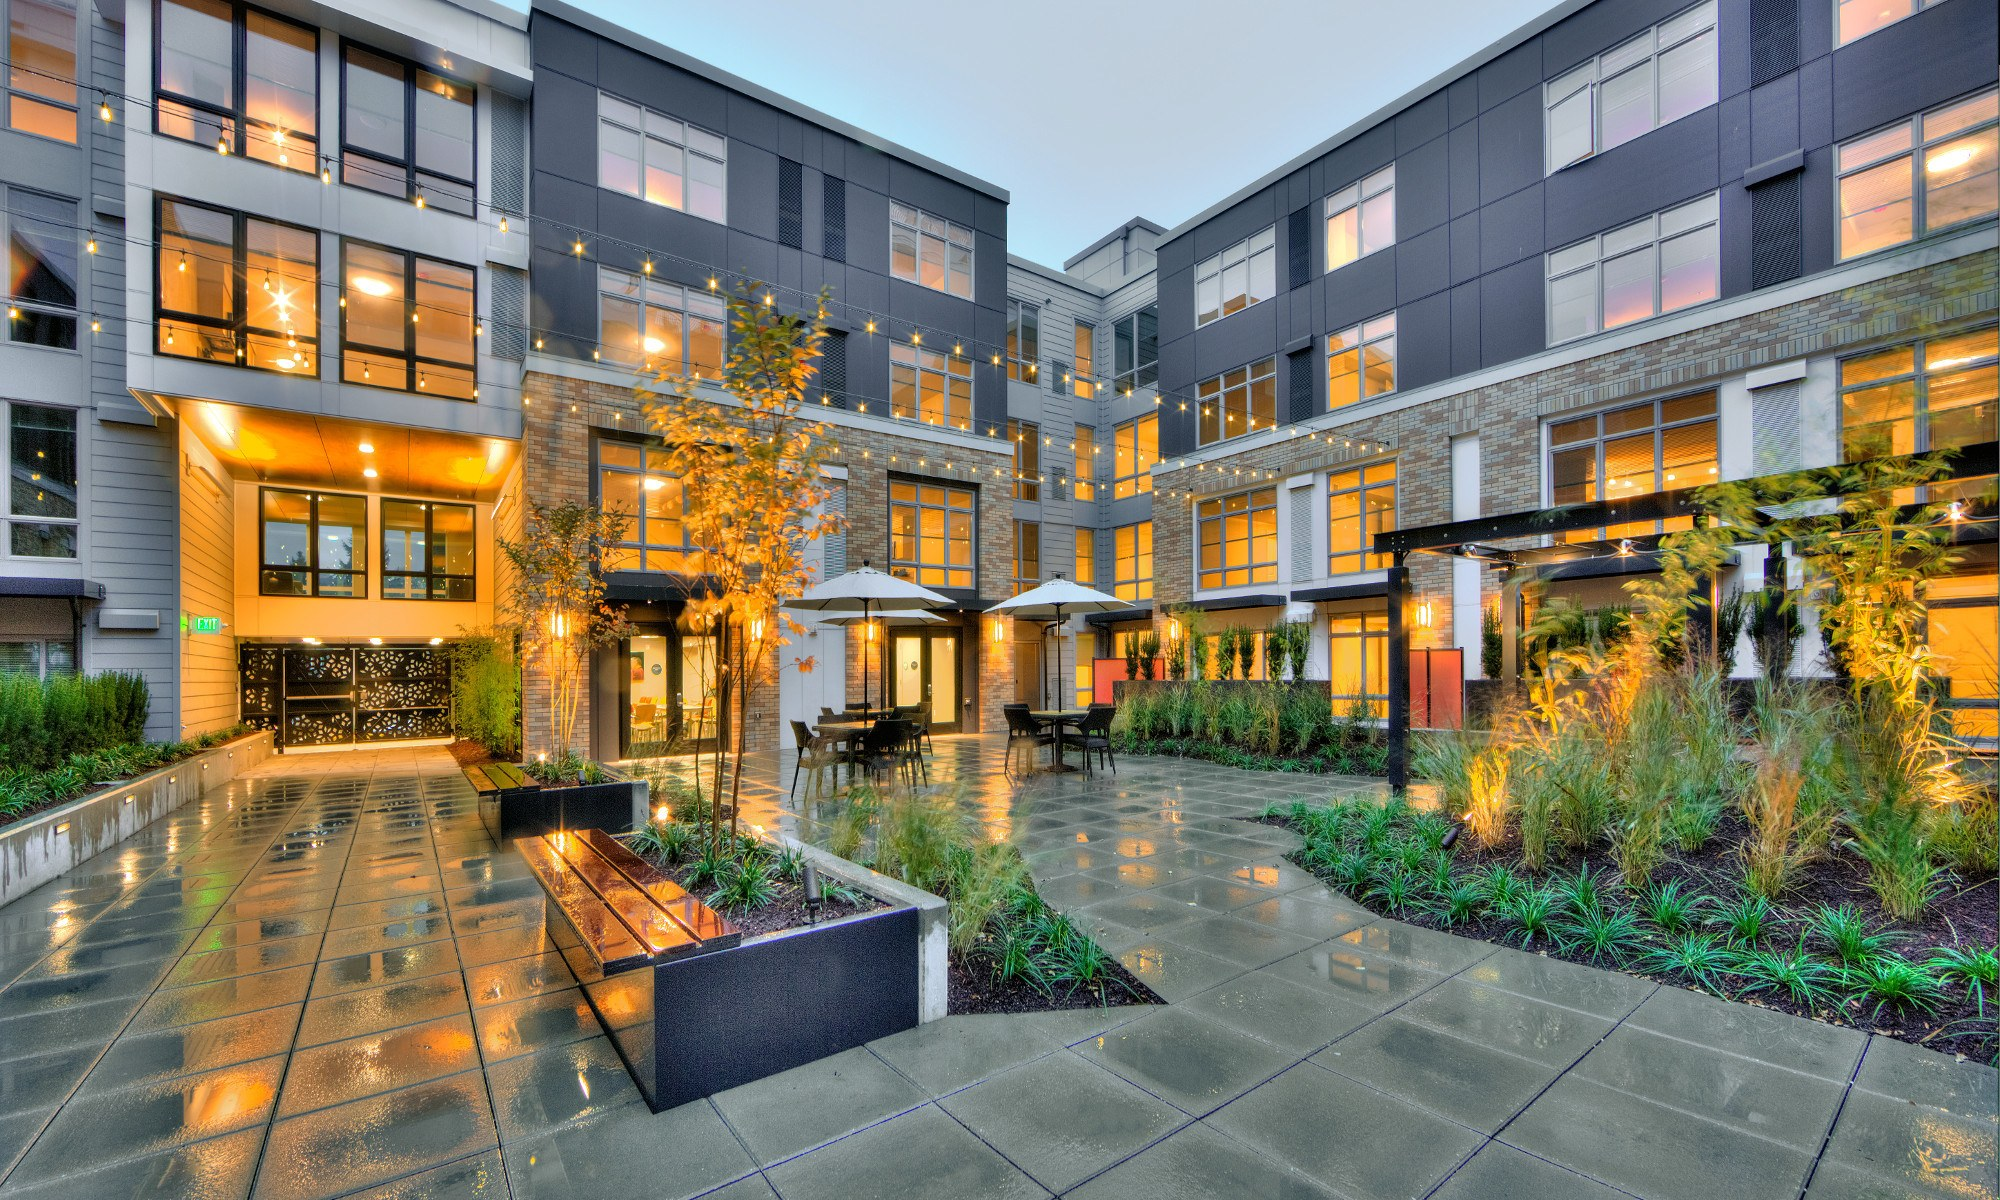 Capitol hill seattle wa apartments for rent the lyric - Seattle 1 bedroom apartments for rent ...